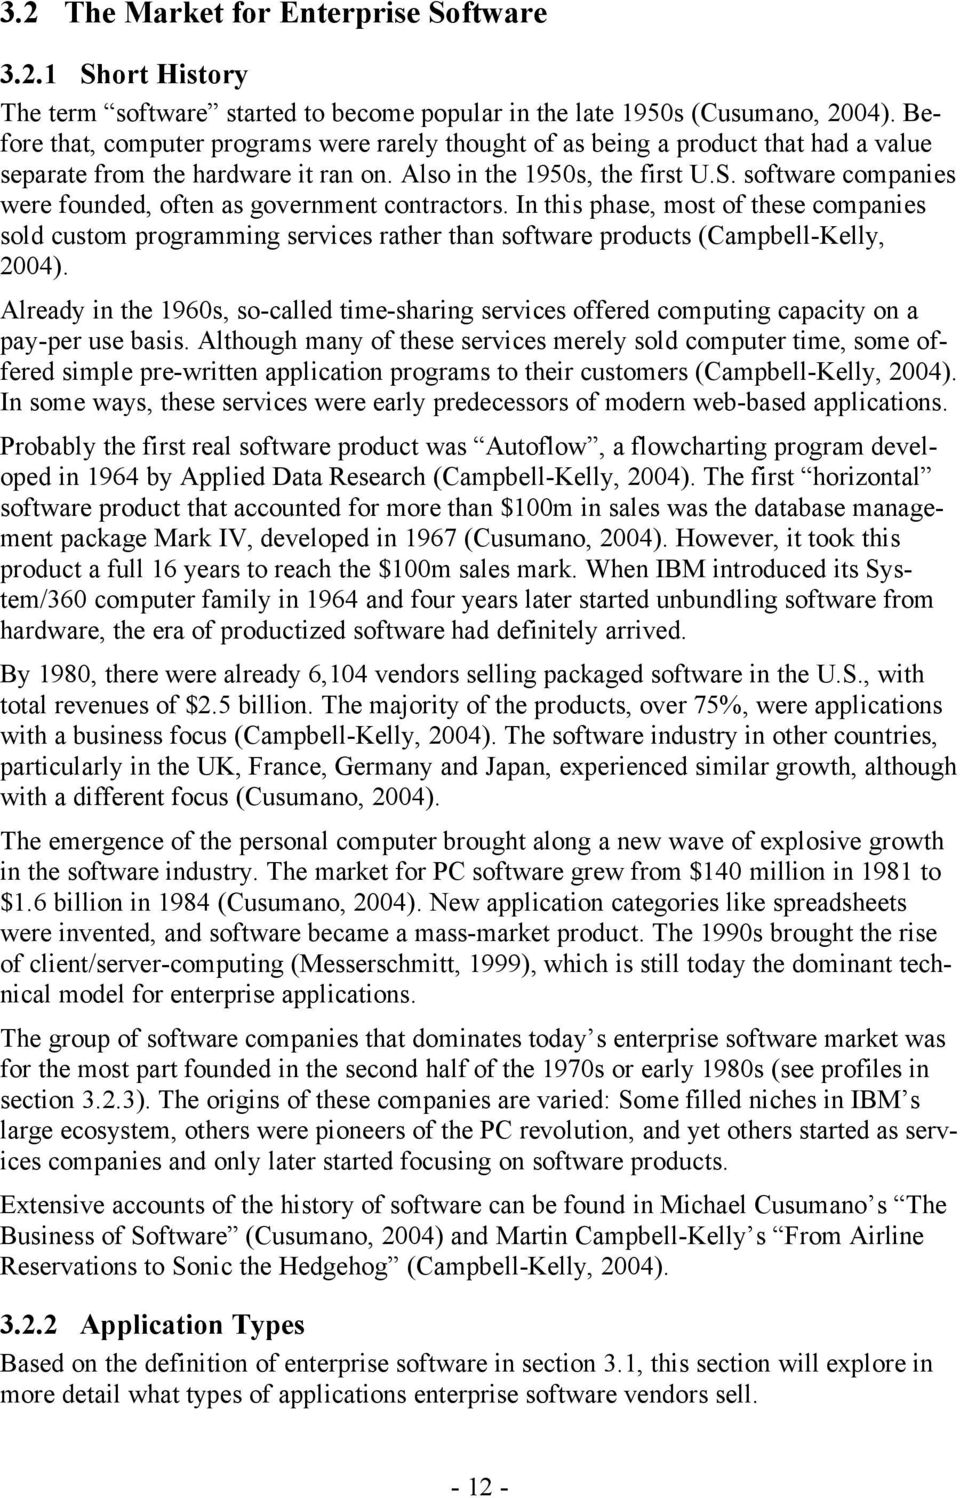 software companies were founded, often as government contractors. In this phase, most of these companies sold custom programming s rather than software products (Campbell-Kelly, 2004).